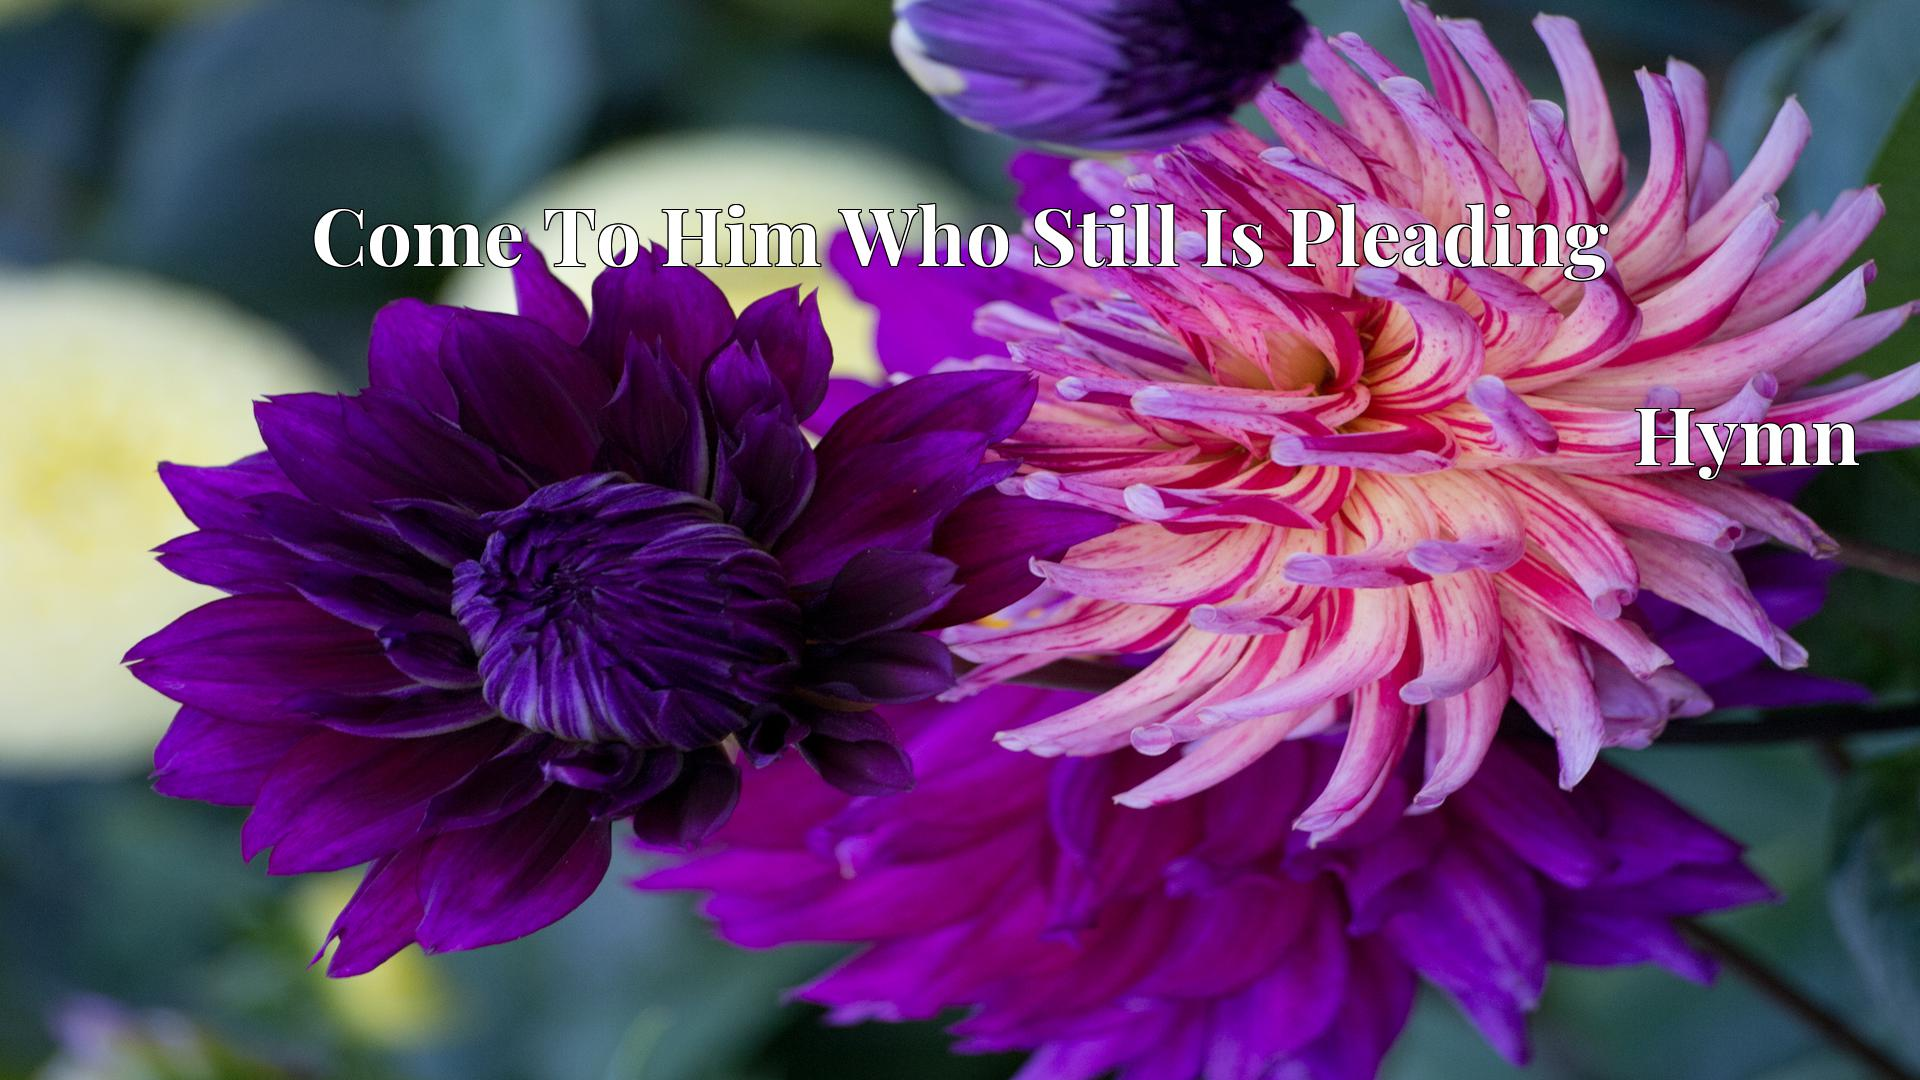 Come To Him Who Still Is Pleading - Hymn